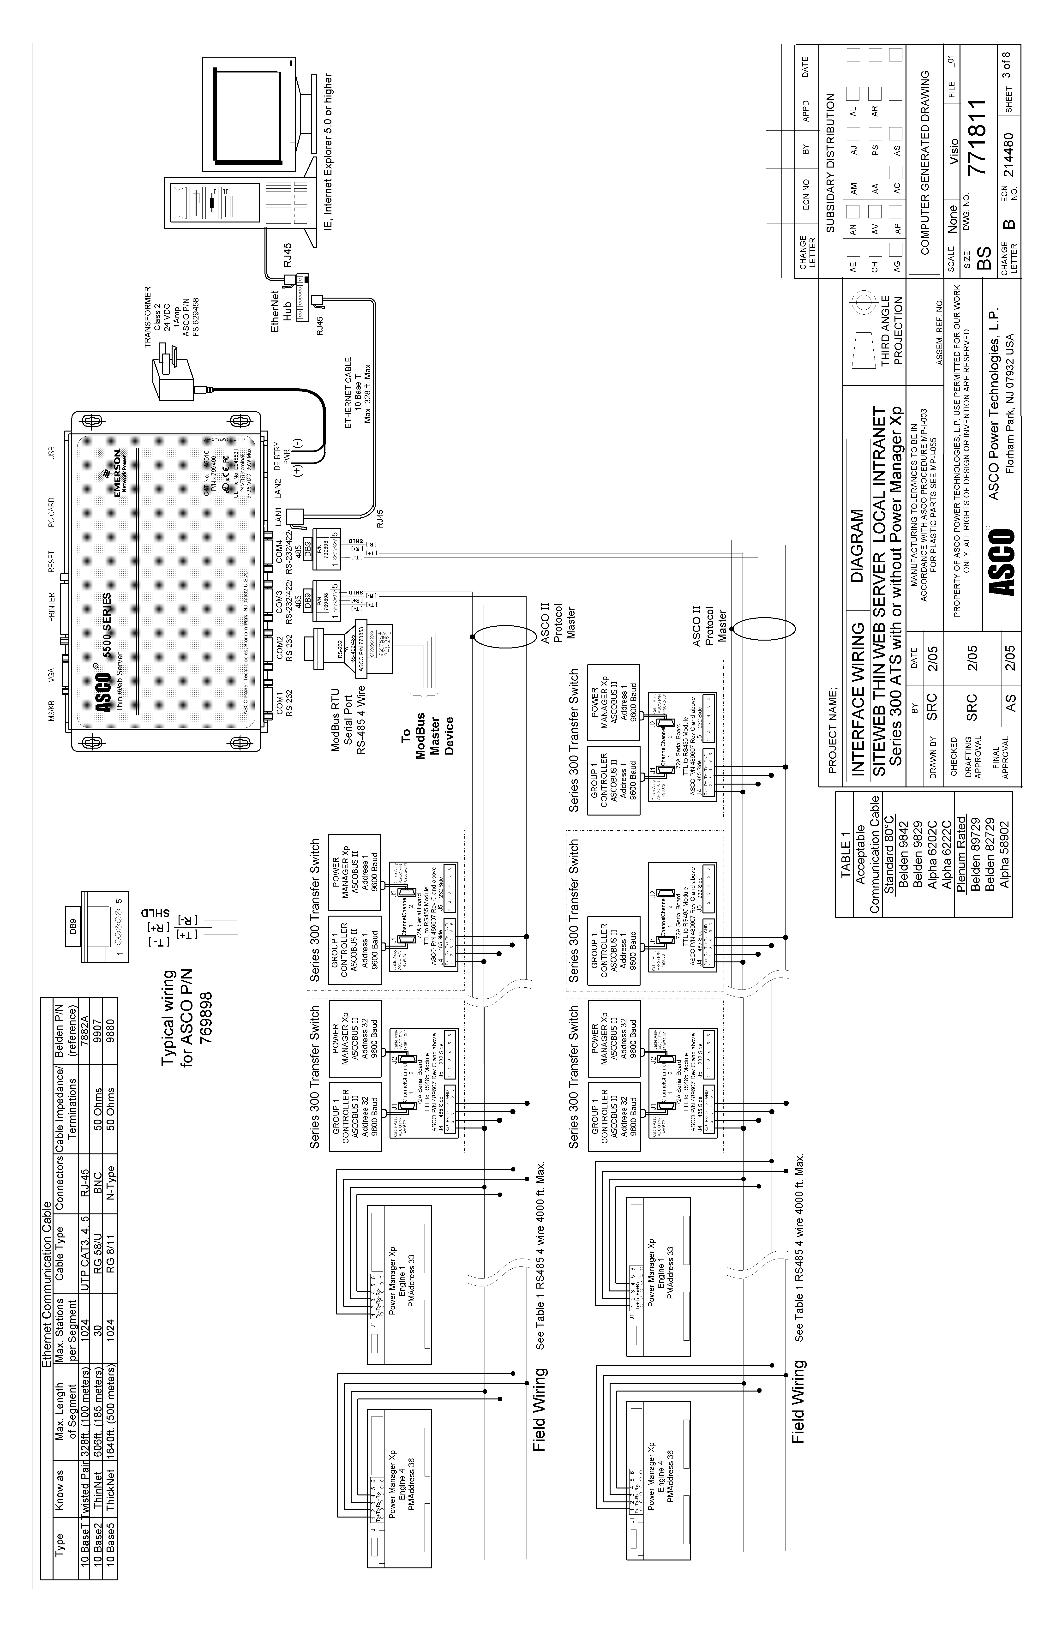 Automatic Transfer Switch Schematic Diagram Pdf